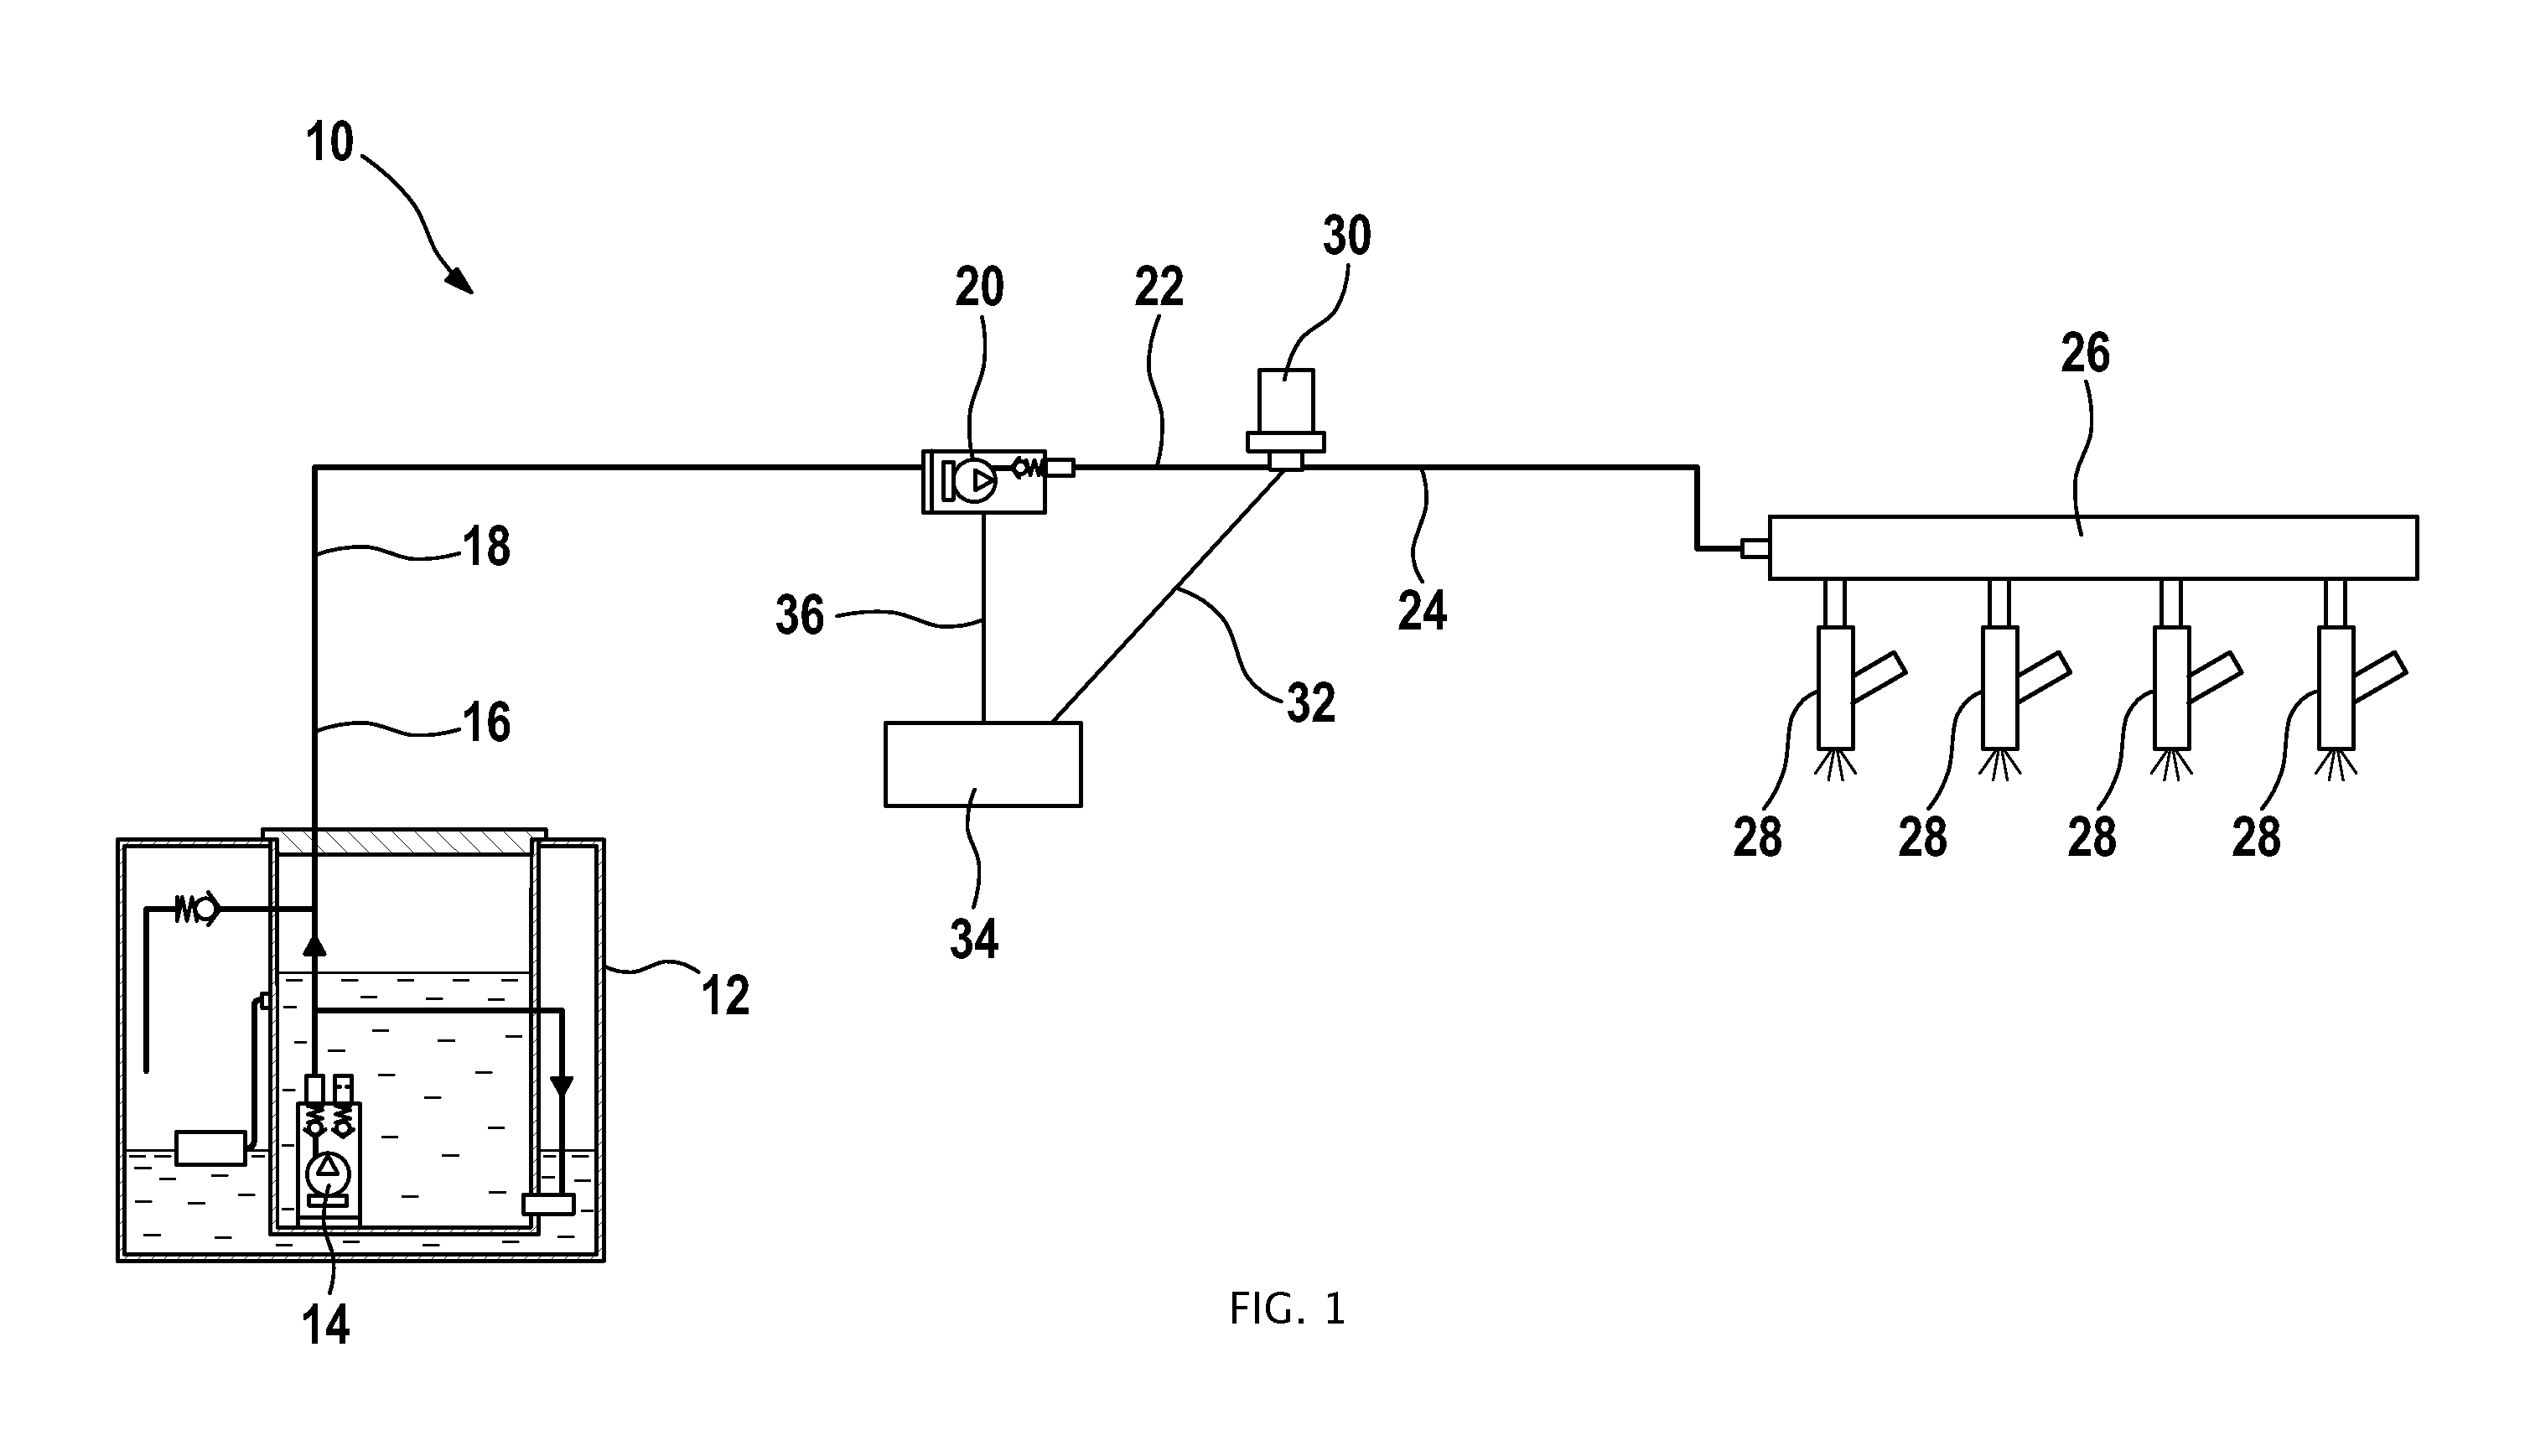 hight resolution of wo2012089364a1 fuel supply system of an internal combustion engine with direct fuel injection